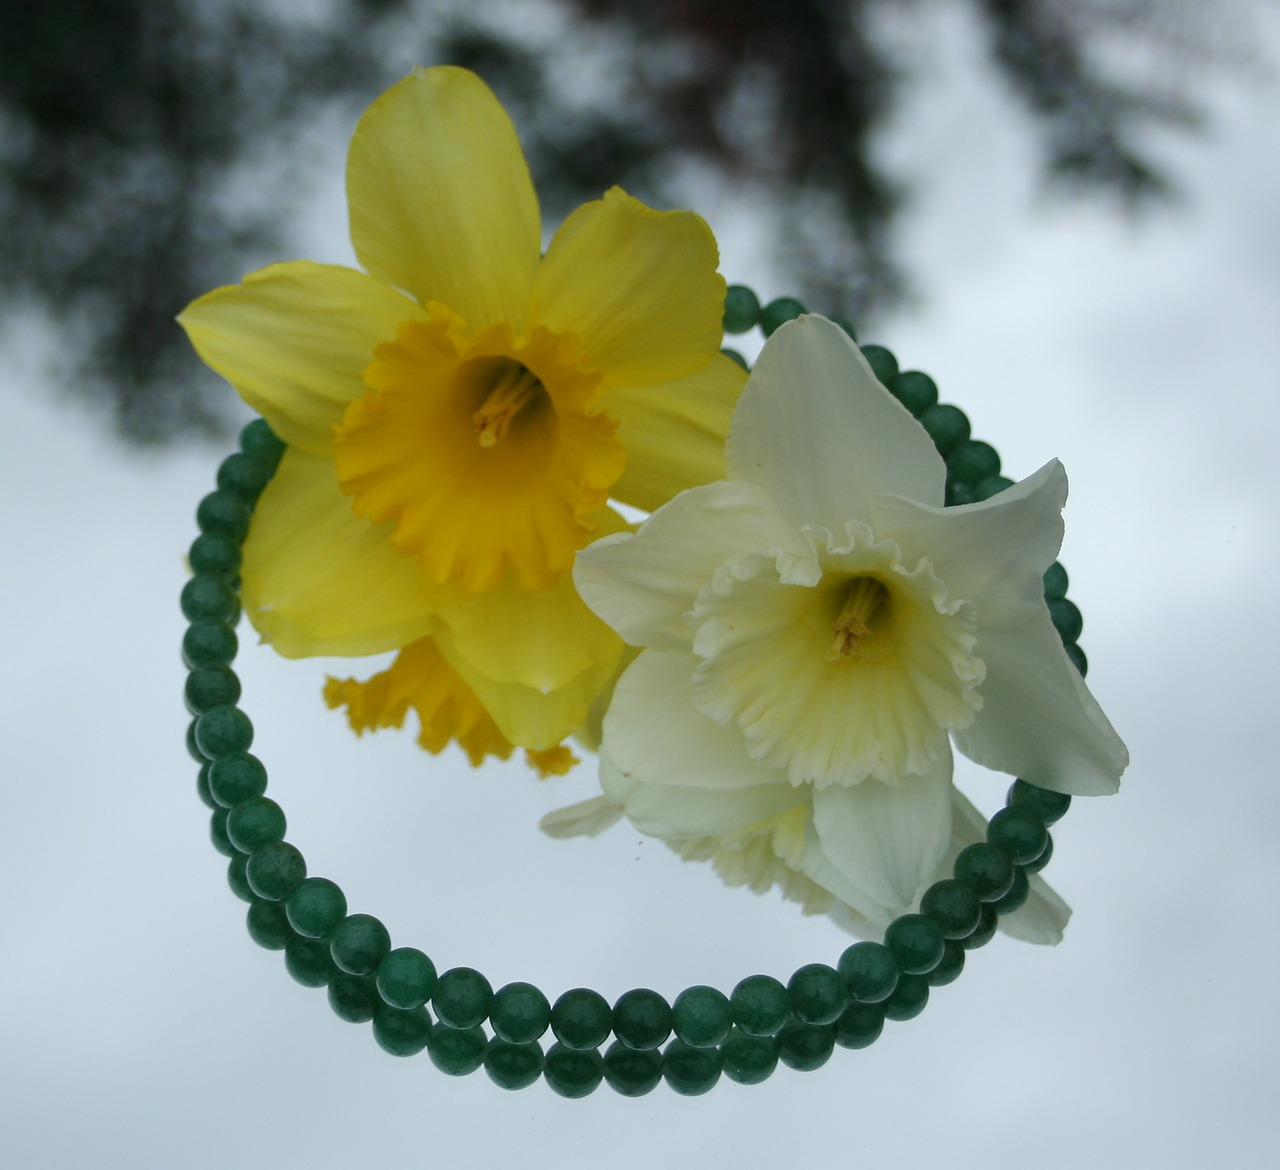 jade necklace daffodils free photo